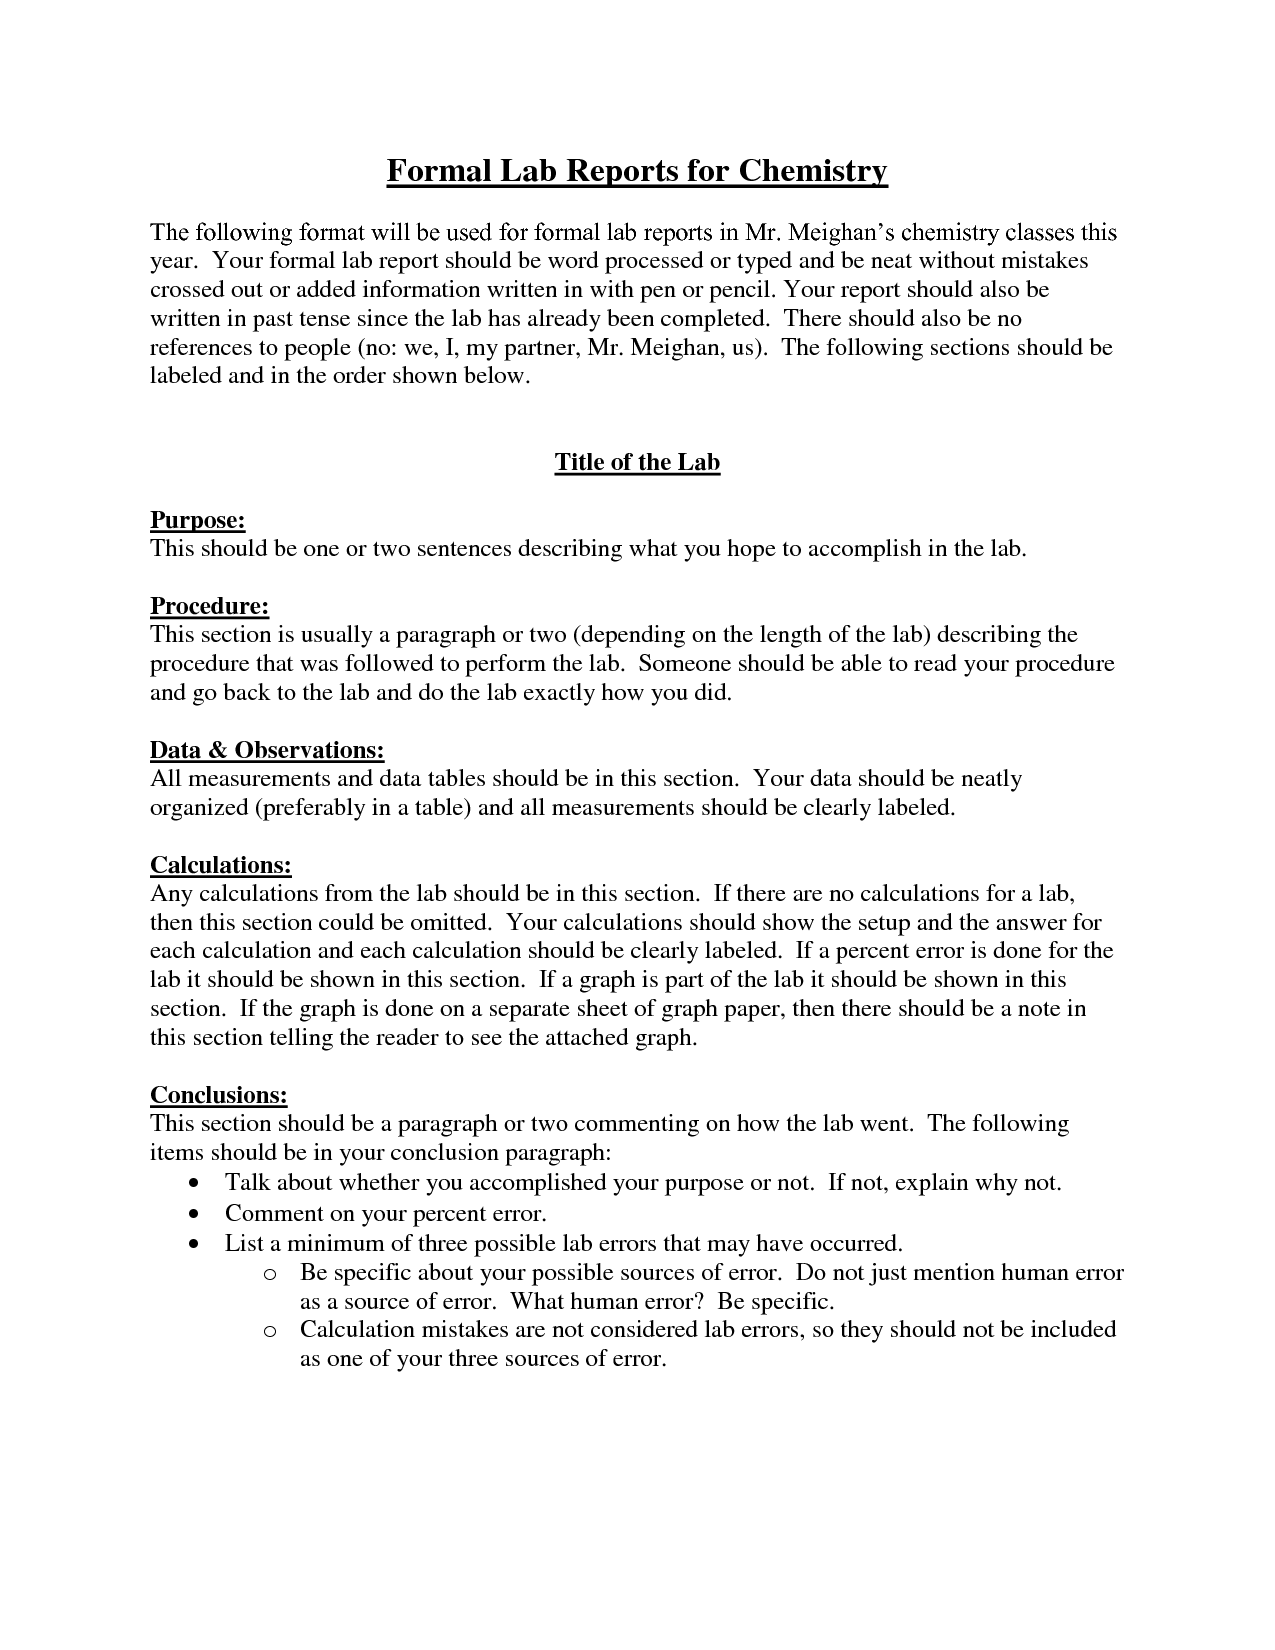 Chemistry Formal Lab Report Format  Challenge Iii